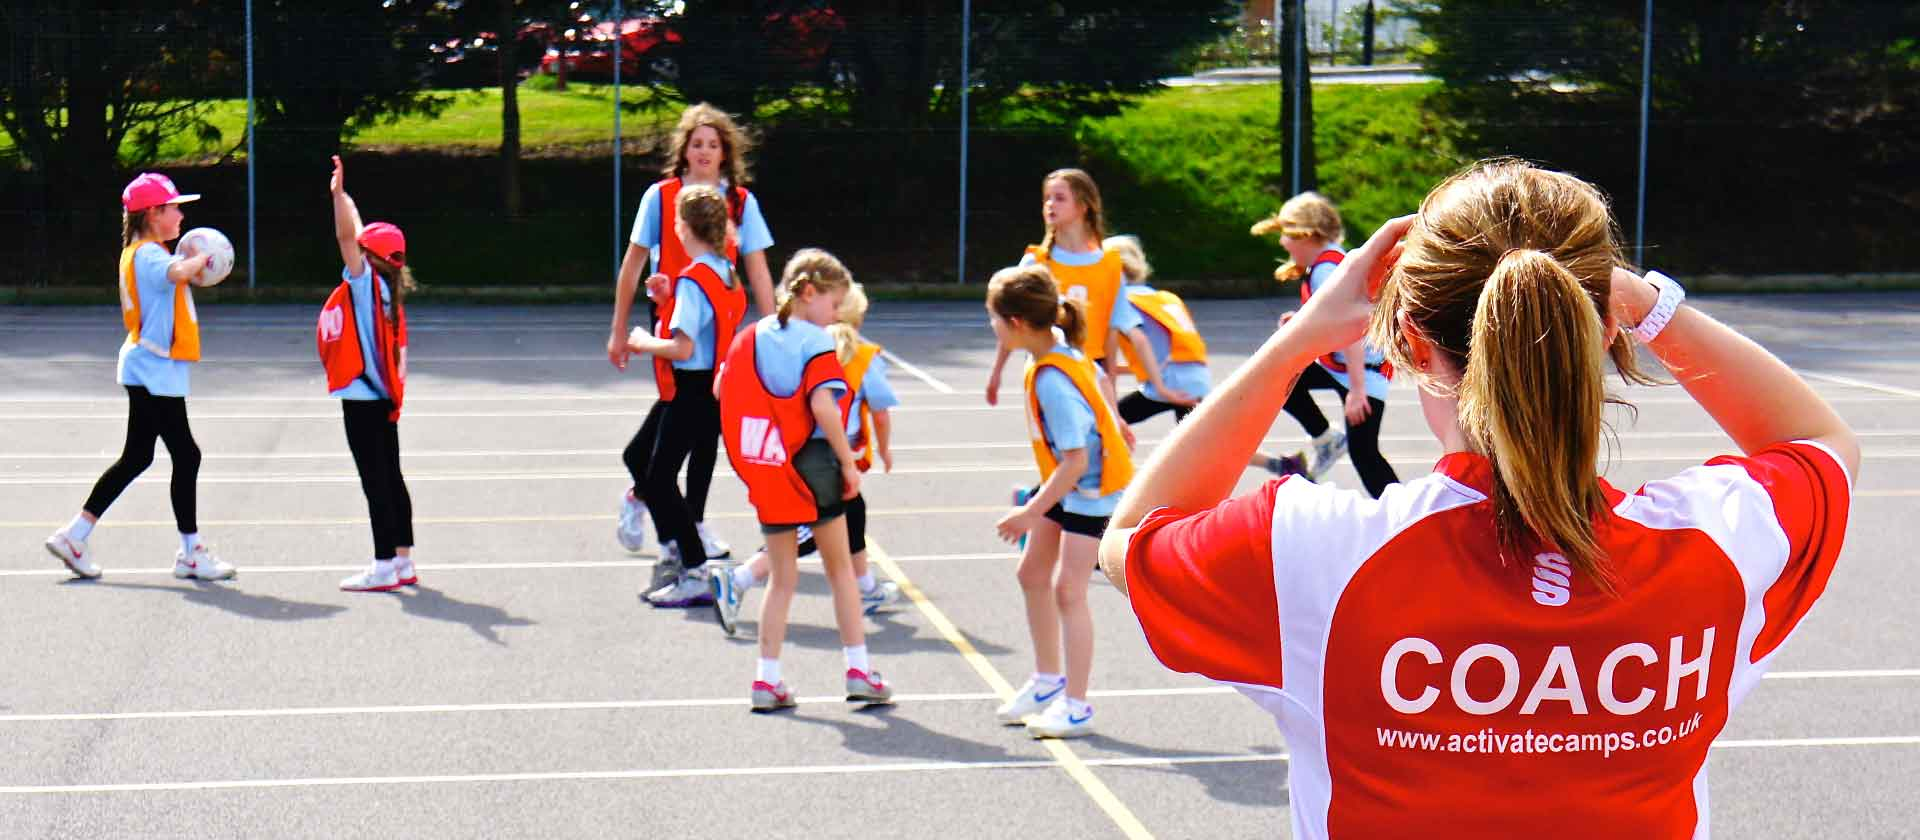 Assistant Junior Netball Coach – YMCA Ansdell